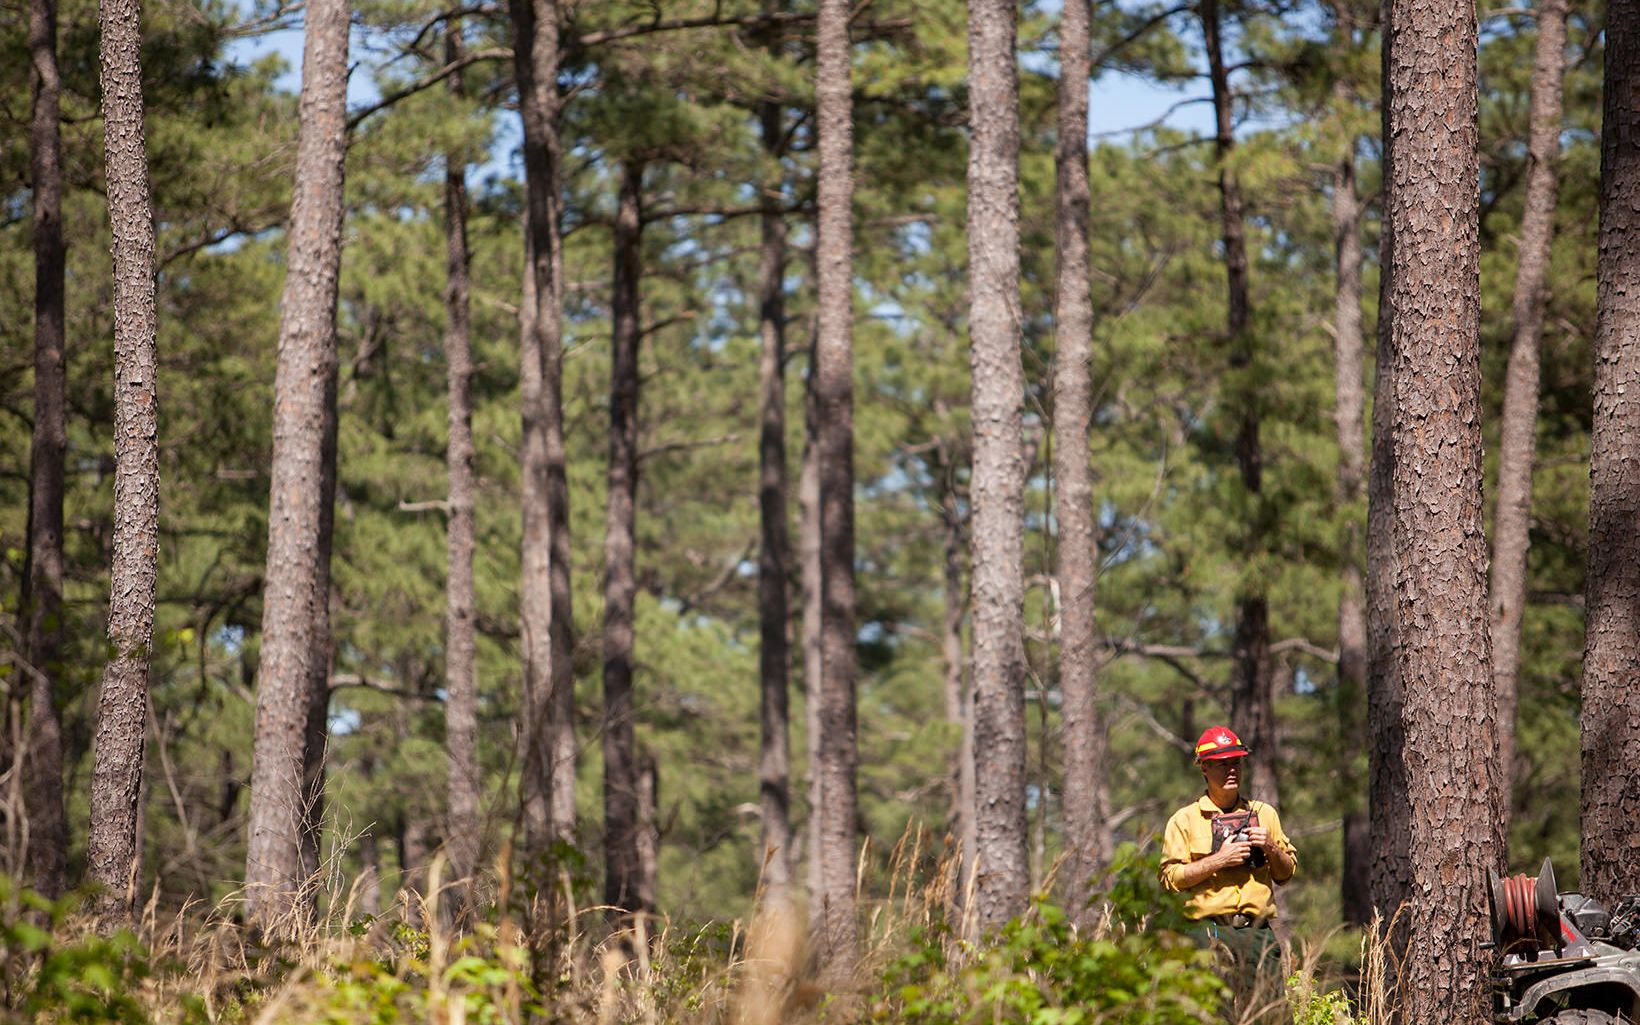 Burn boss Bobby Clontz at Piney Grove Preserve.